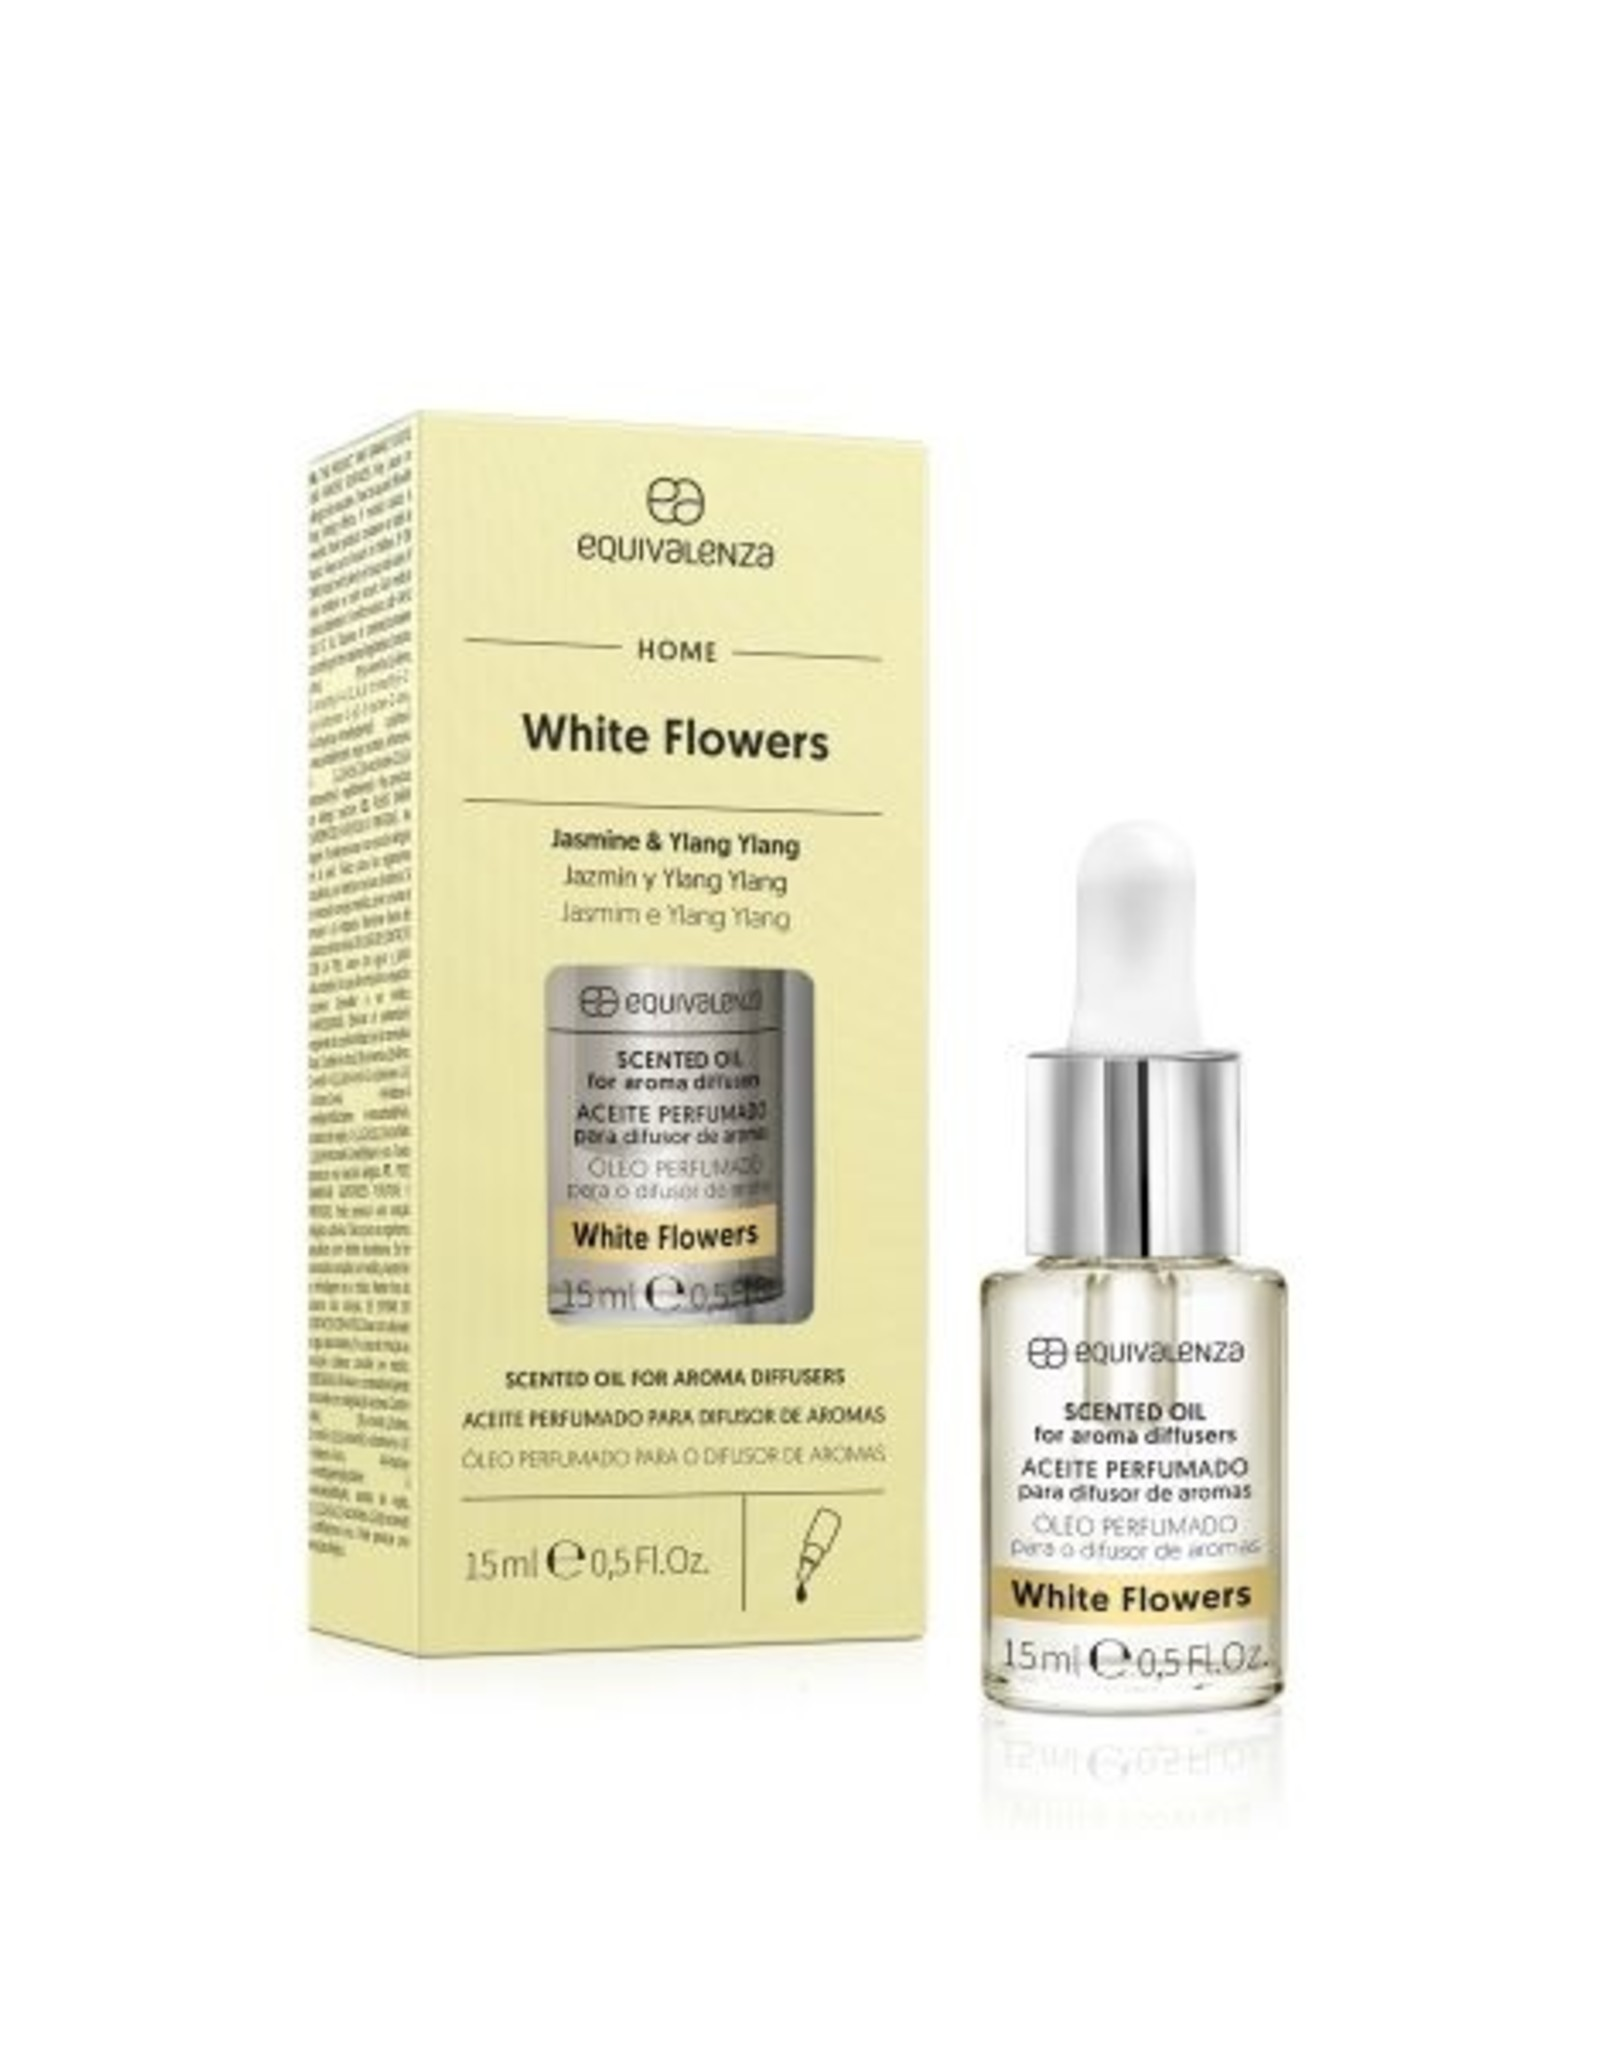 Equivalenza Water-Soluble Scented Oil – White Flowers (white flowers and orange blossom)